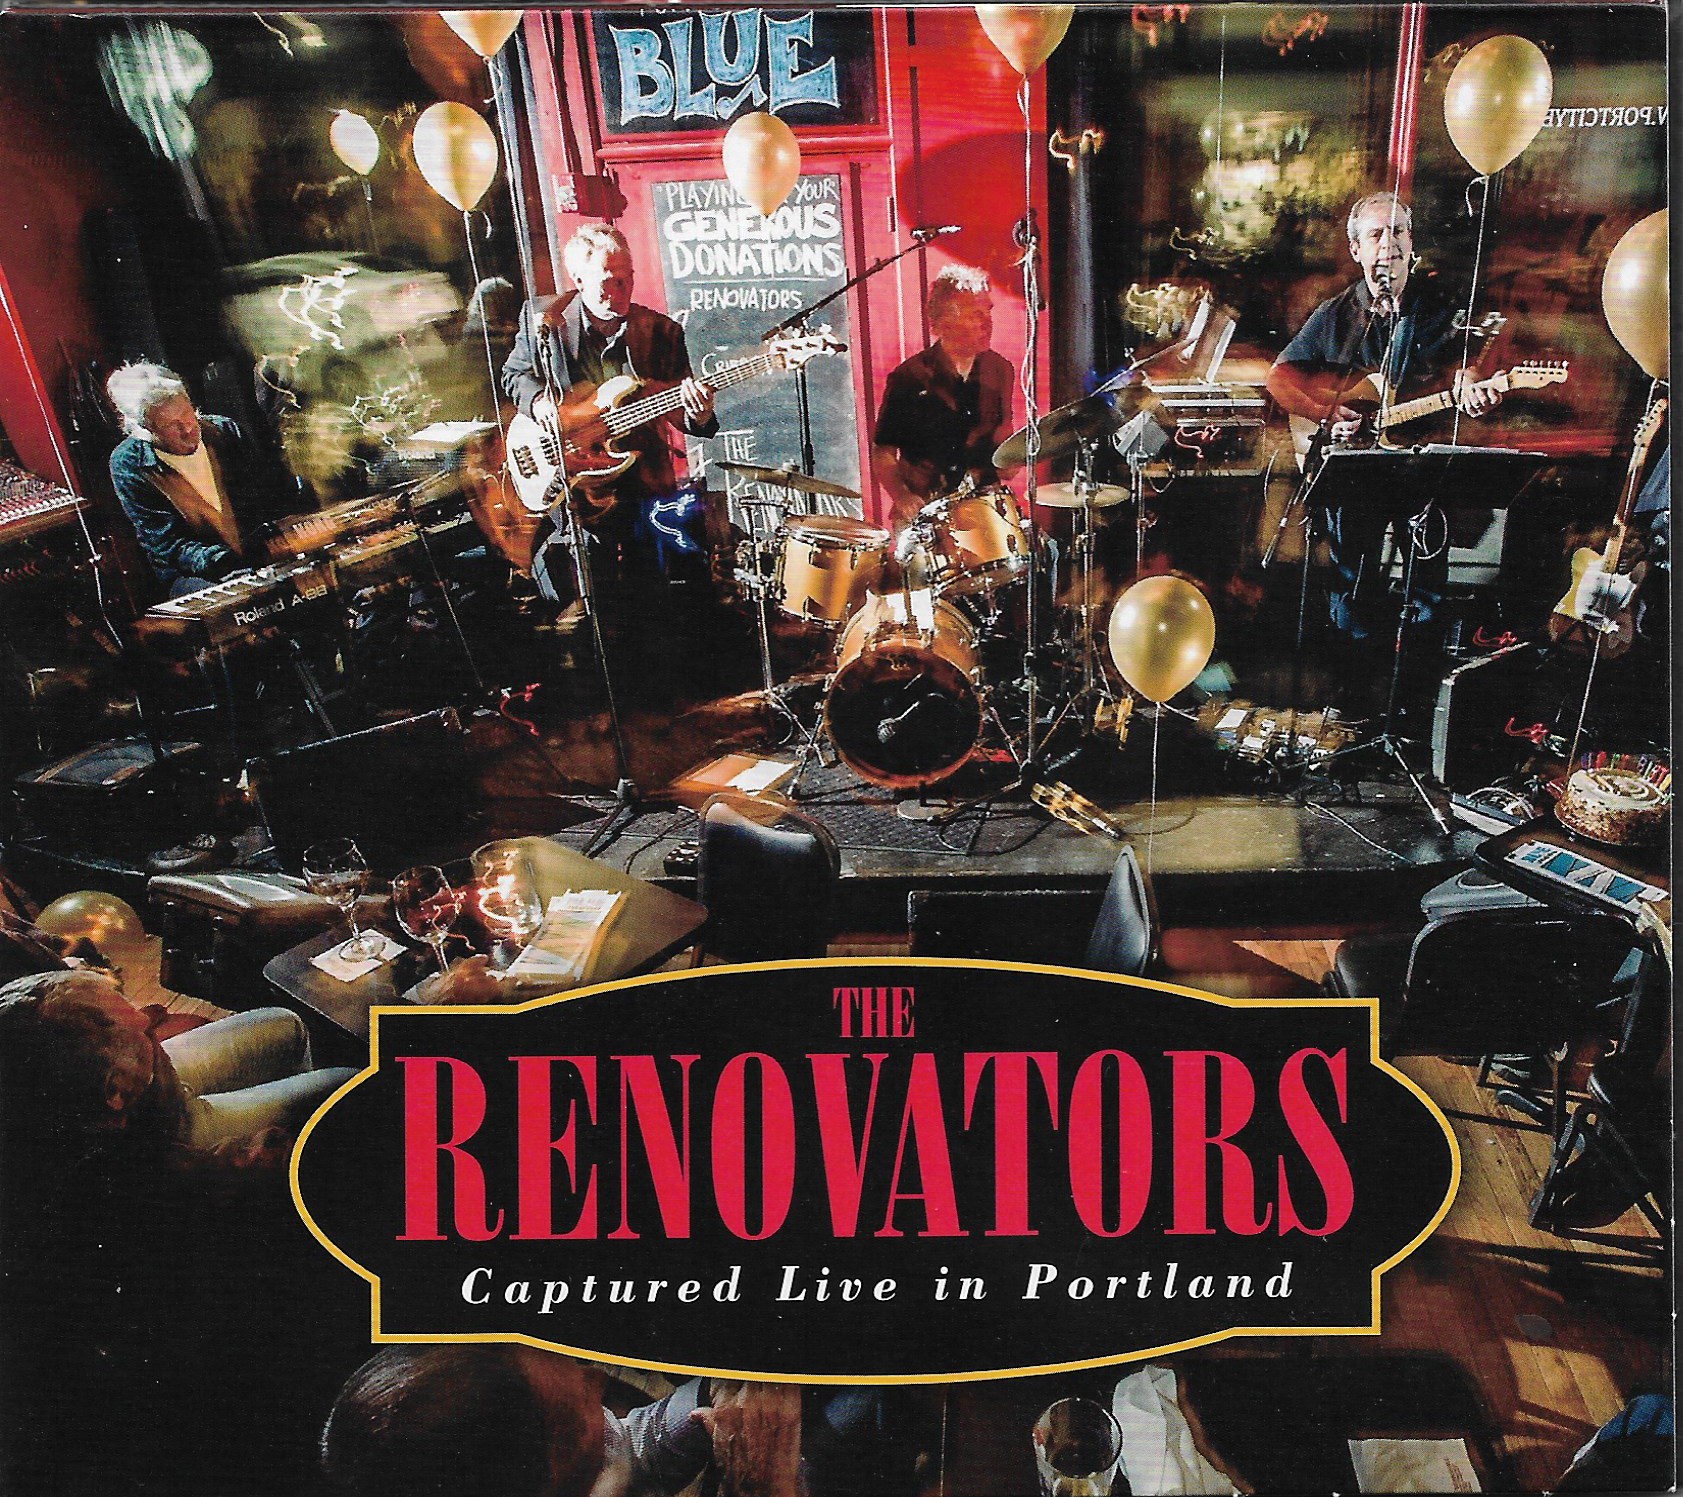 Bob Rosero and the Renovators